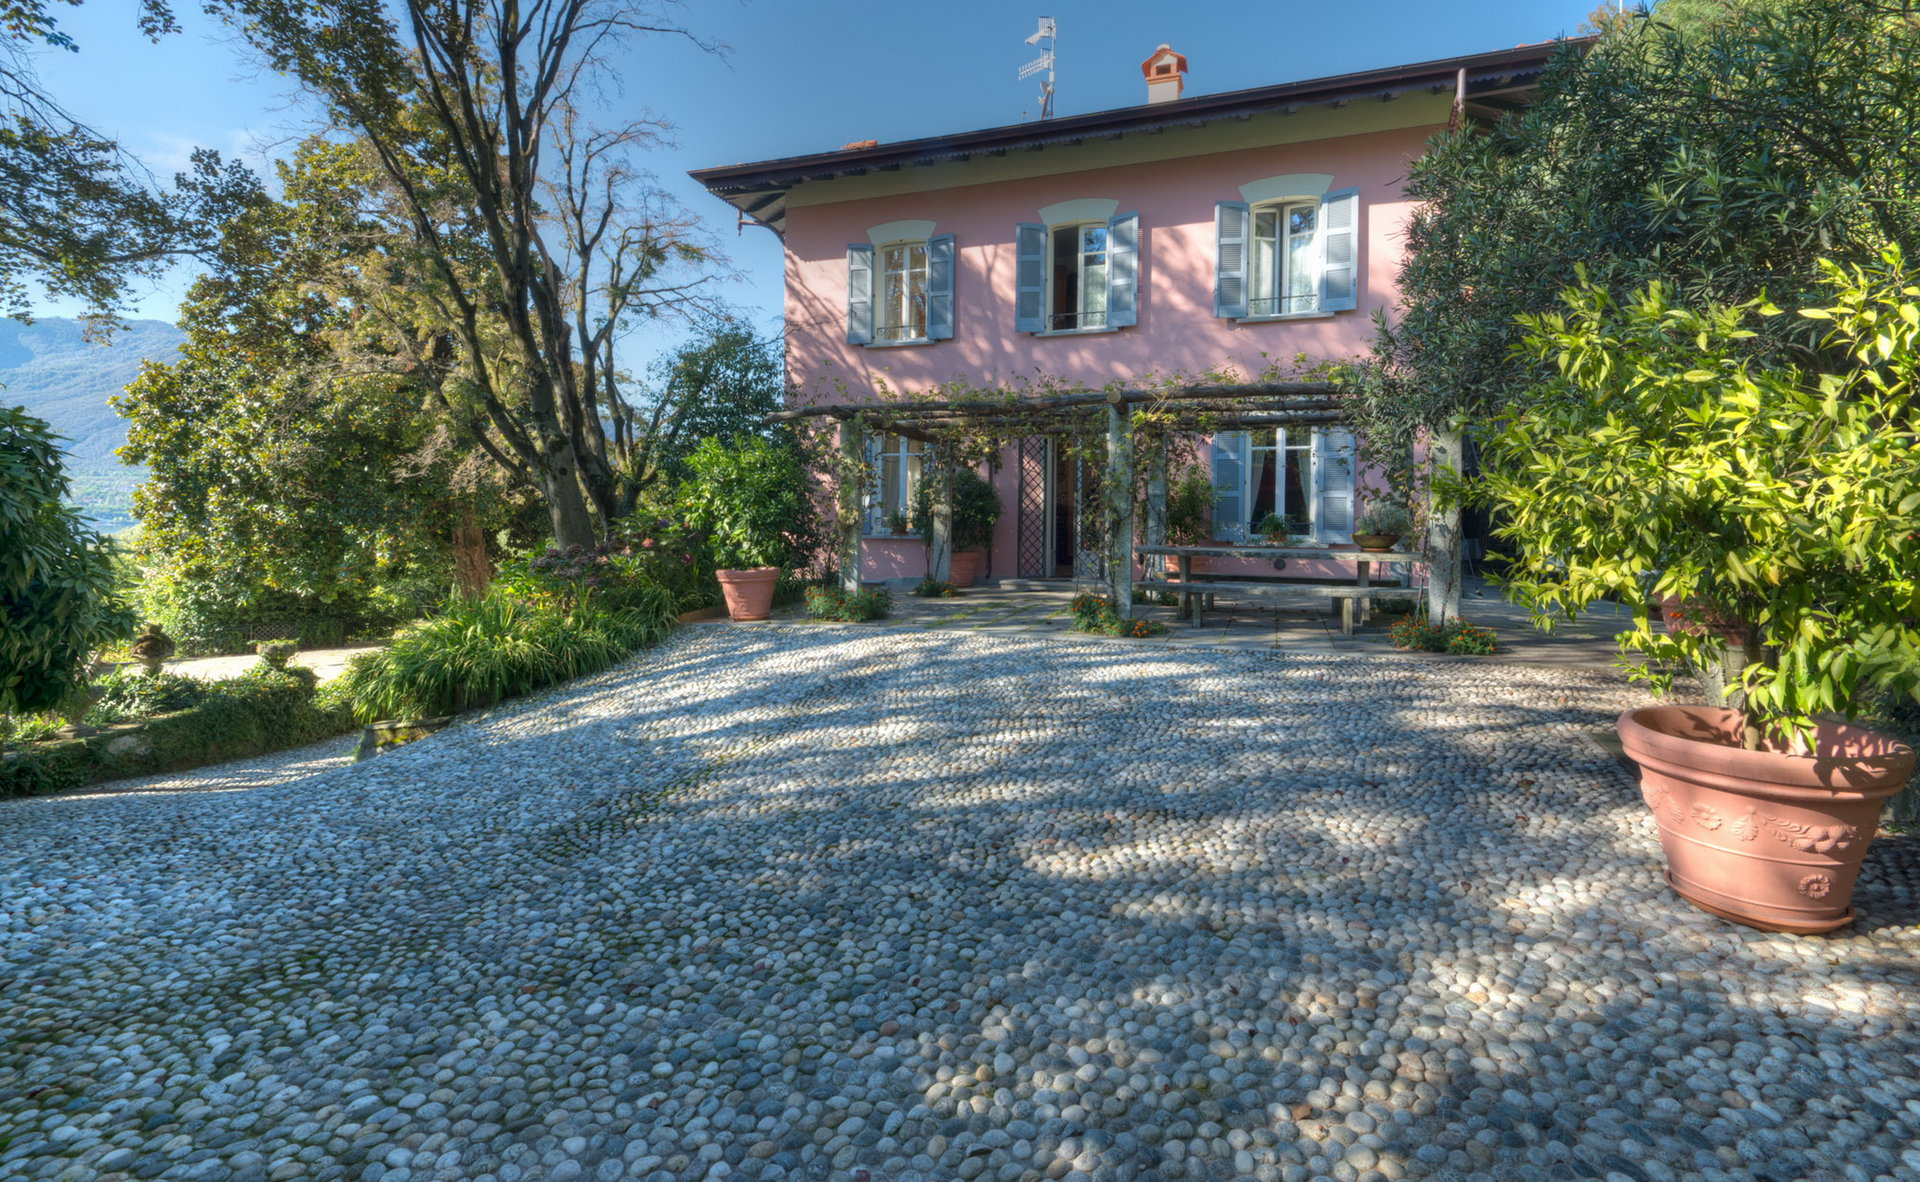 Historic villa with guesthouse and land for sale in Verbania - outside